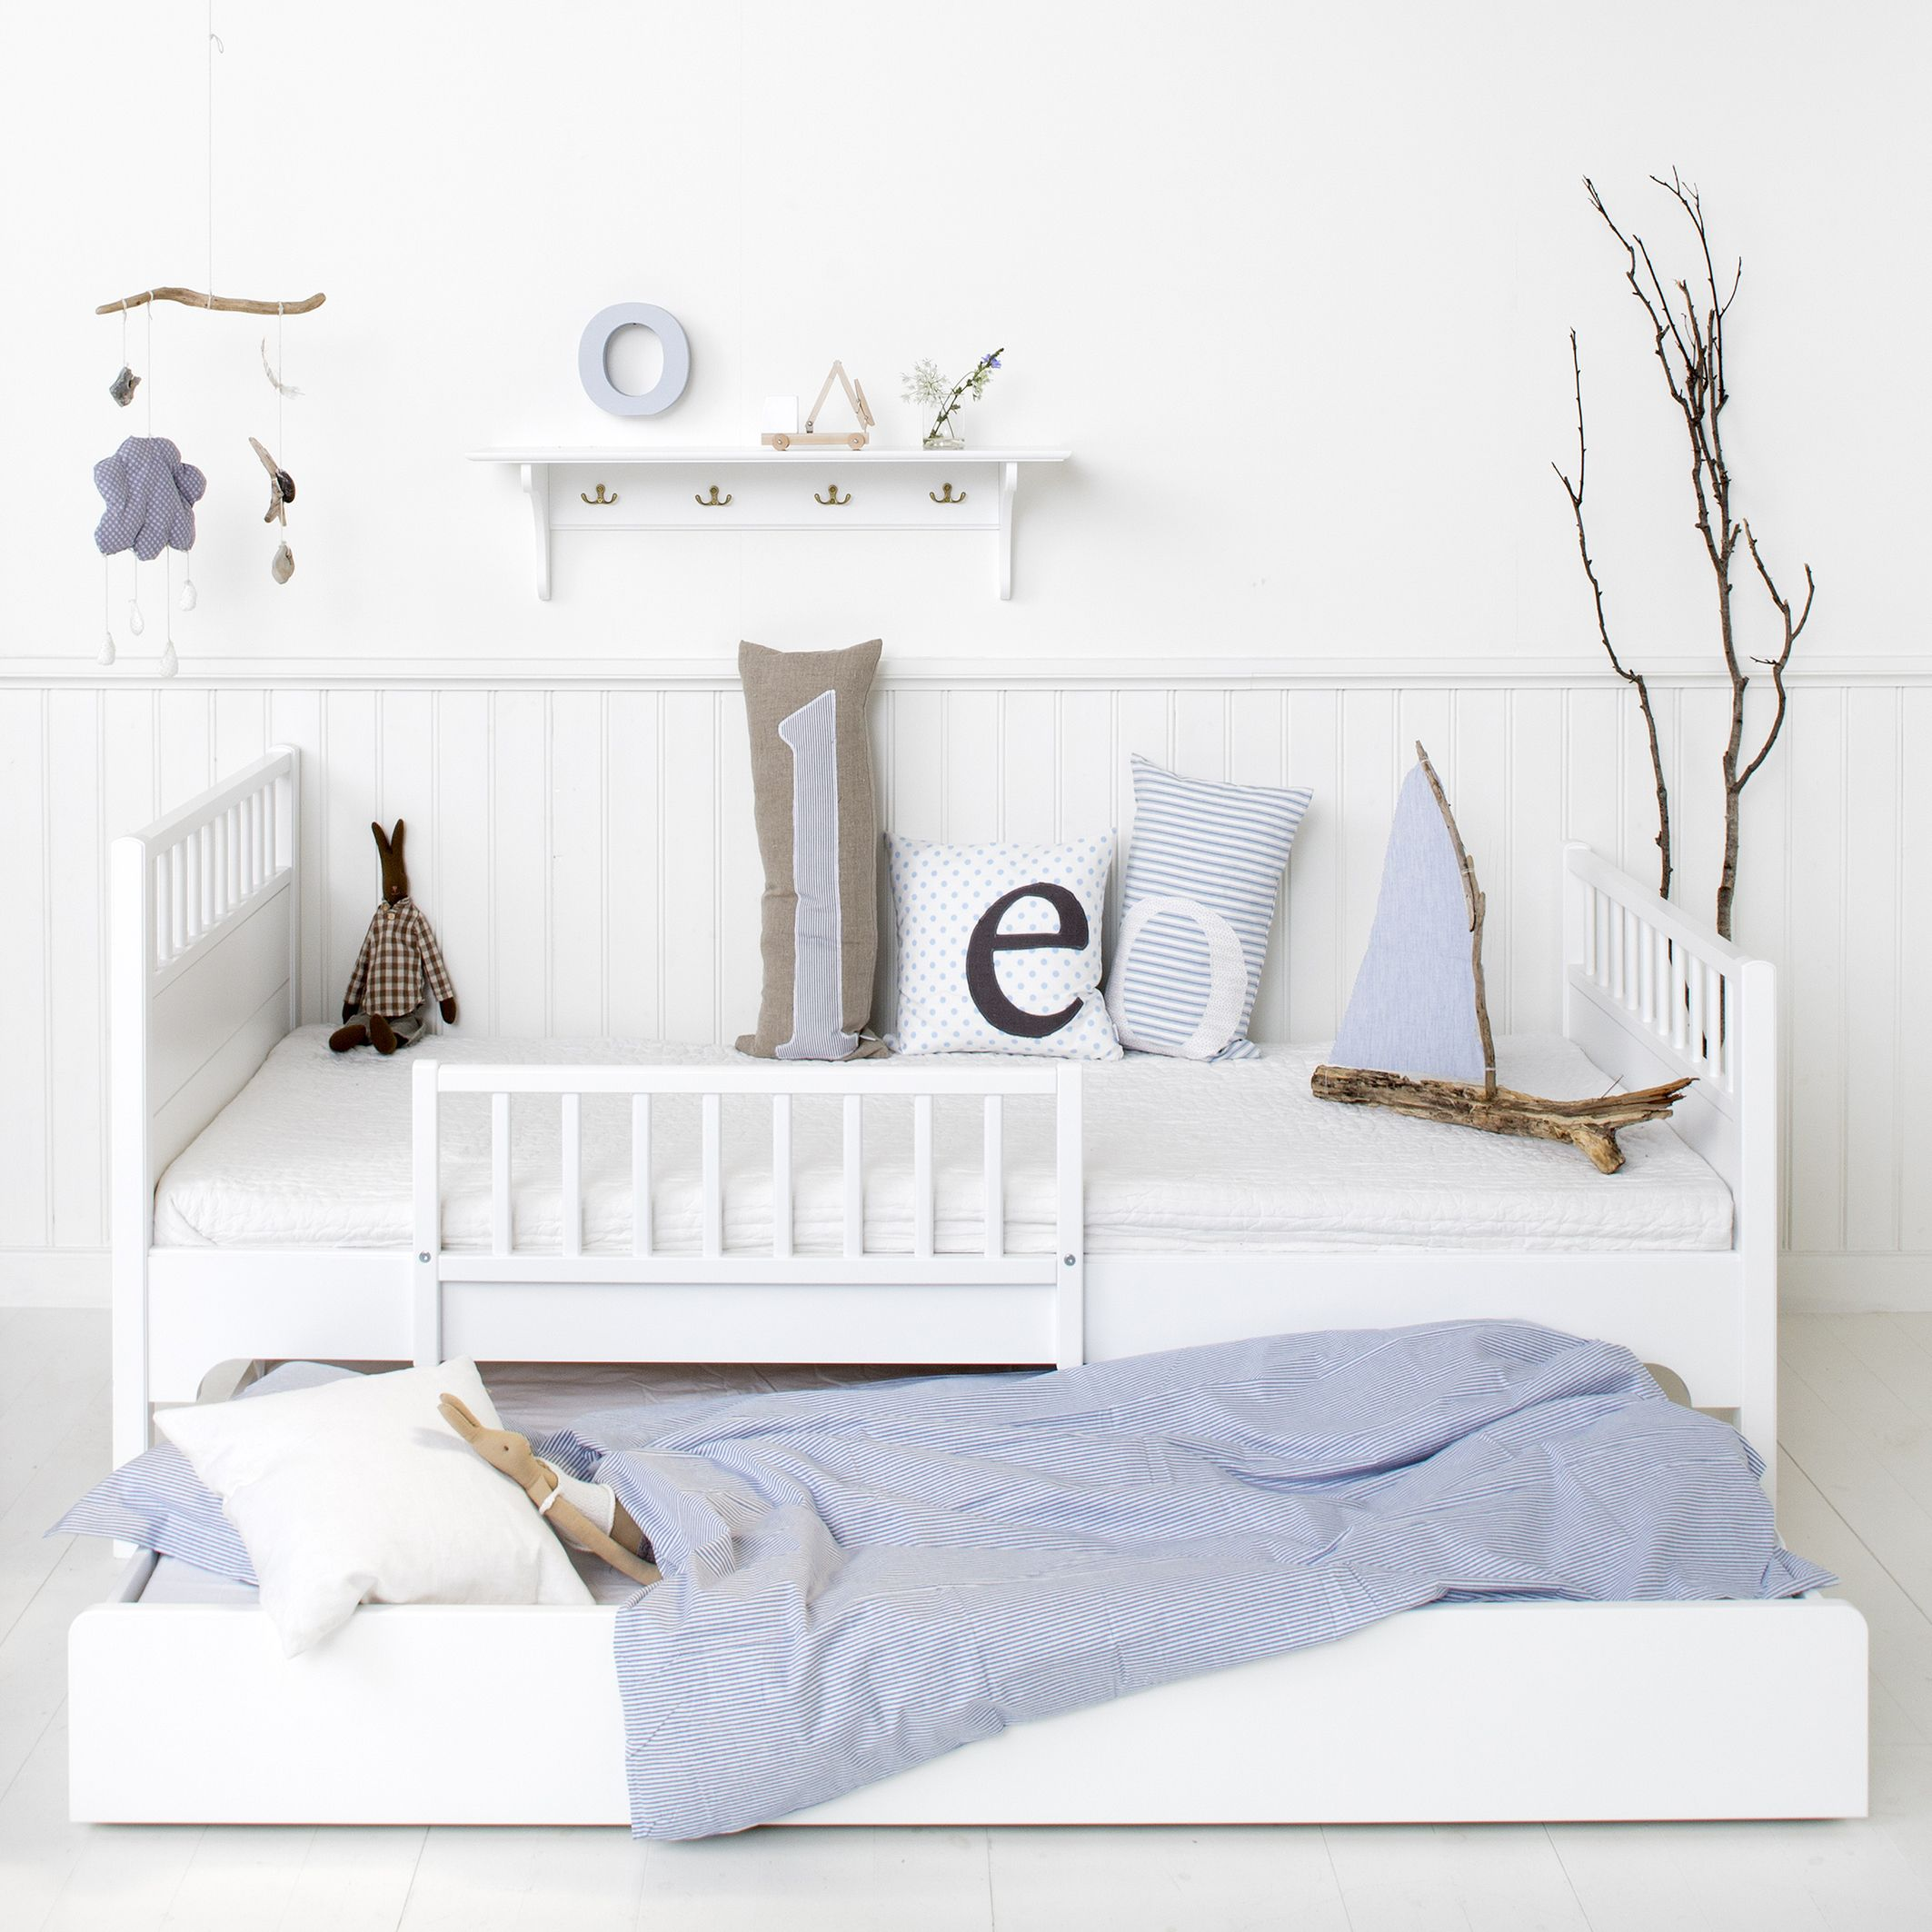 Bed and trundle bed from Oliver Furniture Nordic style